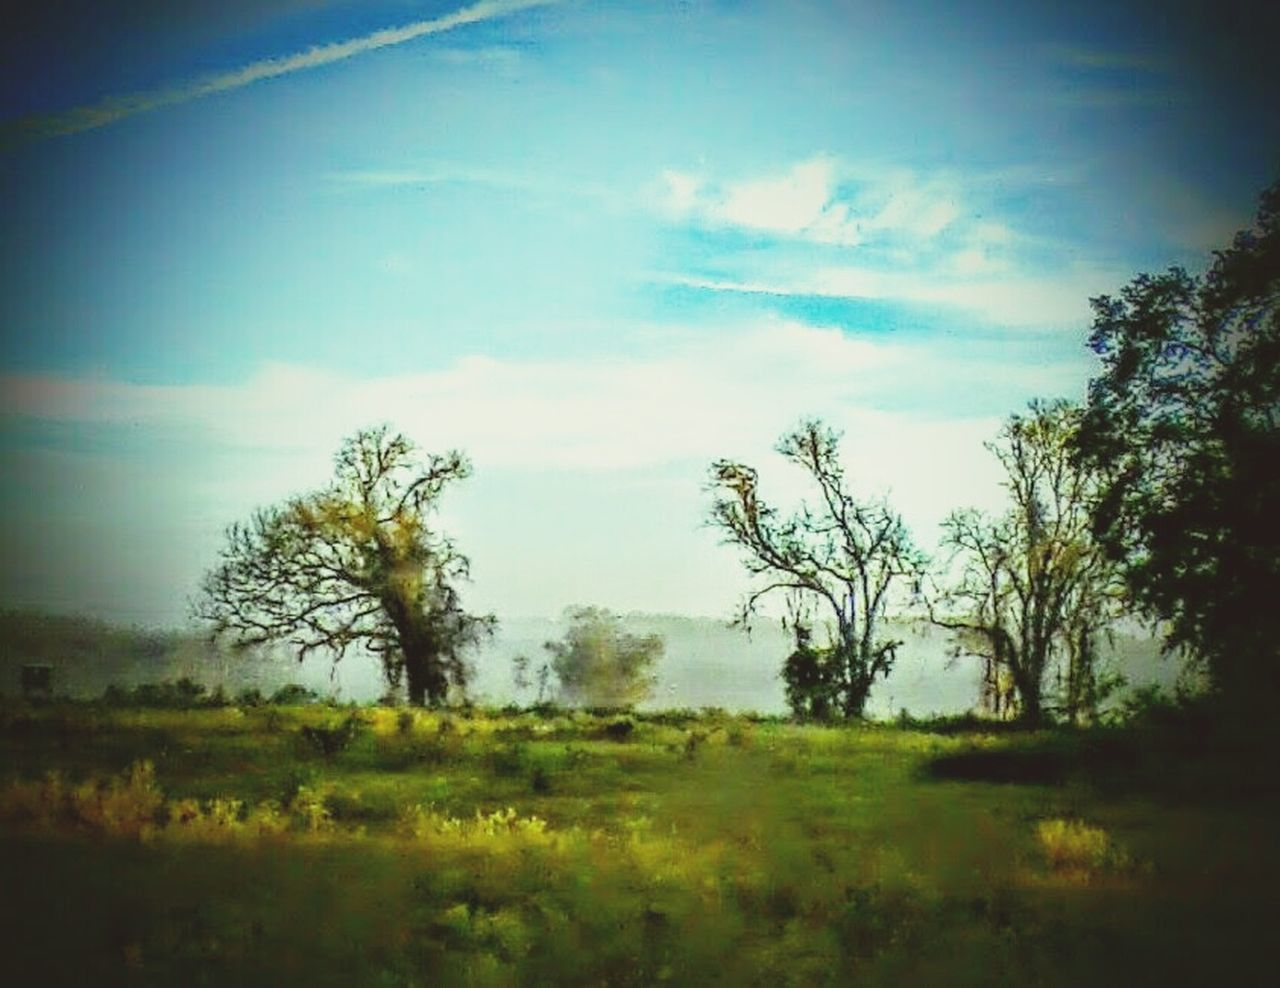 landscape, field, tree, nature, sky, beauty in nature, no people, grass, day, outdoors